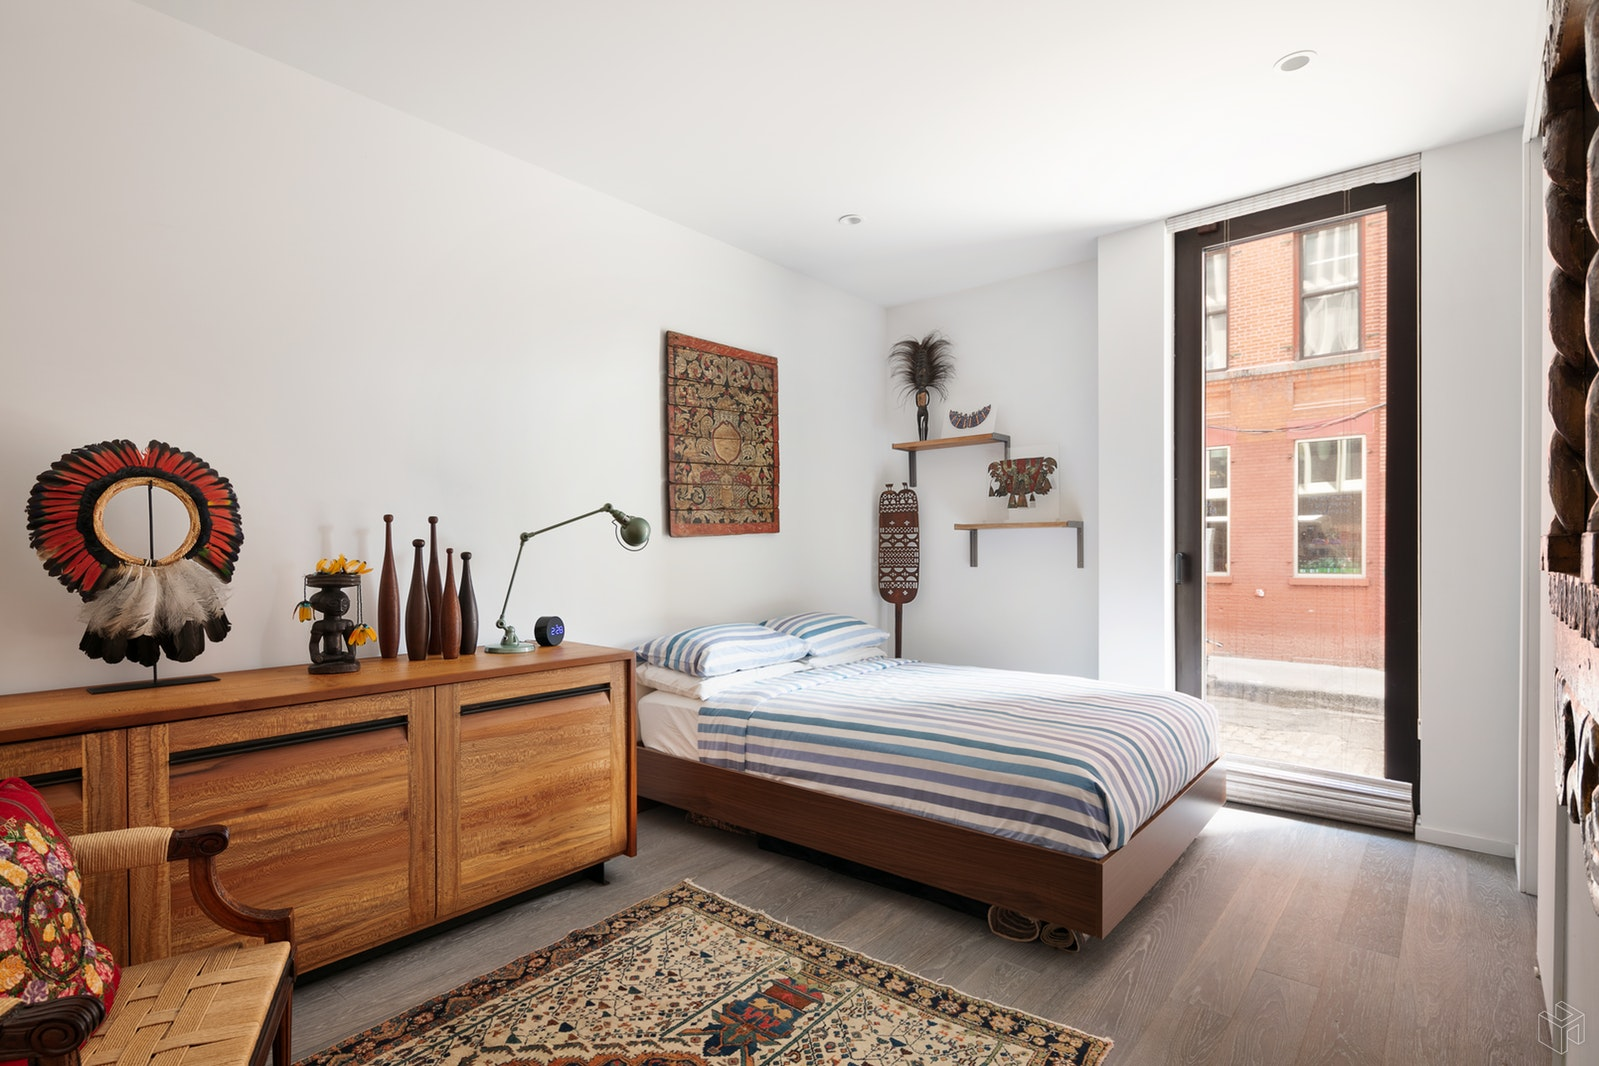 169 Water Street, Brooklyn, Brooklyn, NY, 11201, $4,795,000, Property For Sale, Halstead Real Estate, Photo 13